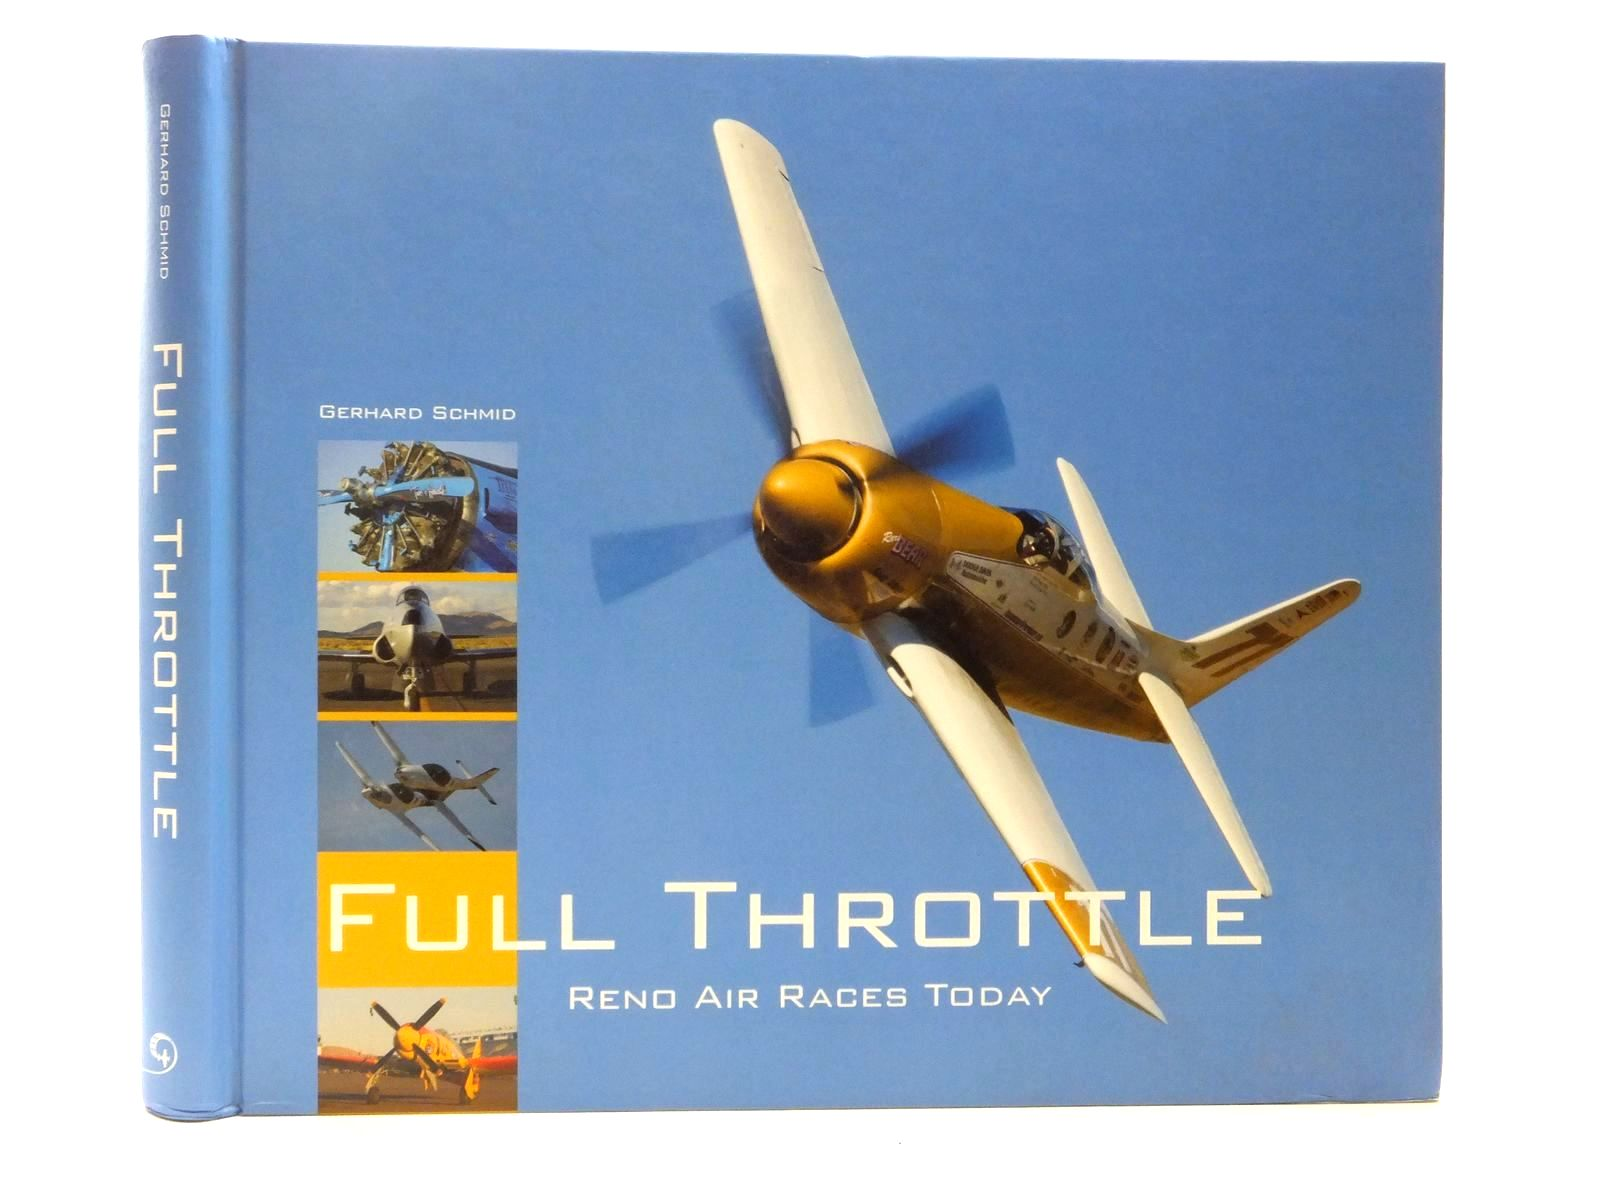 Photo of FULL THROTTLE RENO AIR RACES TODAY written by Schmid, Gerhard published by Luftbildverlag Bertram (STOCK CODE: 1609718)  for sale by Stella & Rose's Books